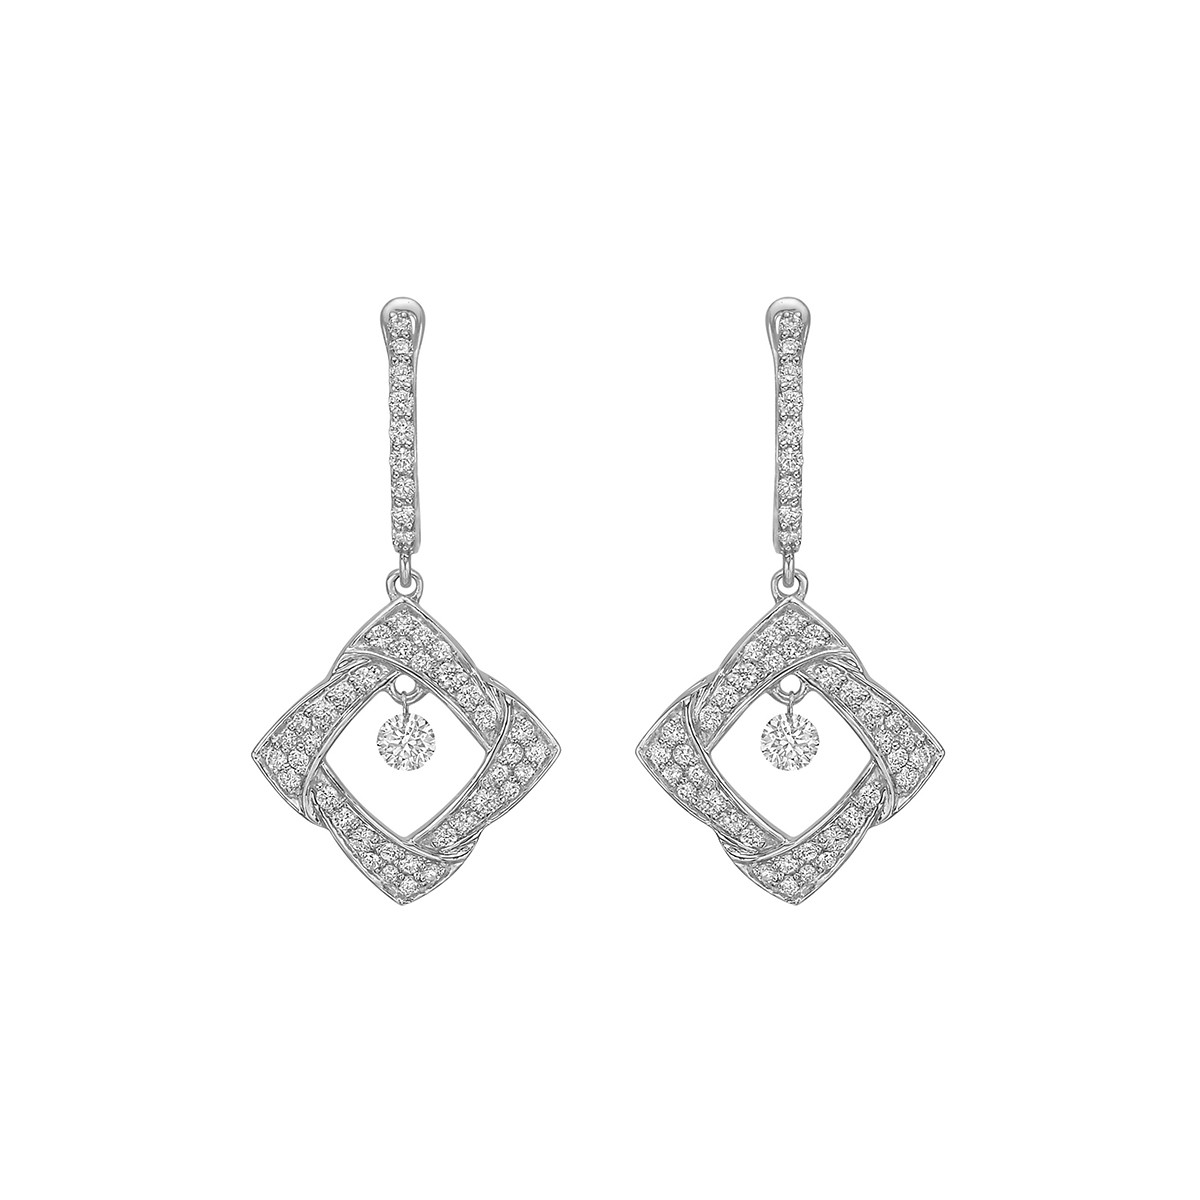 Woven Diamond-Shaped Drop Earrings